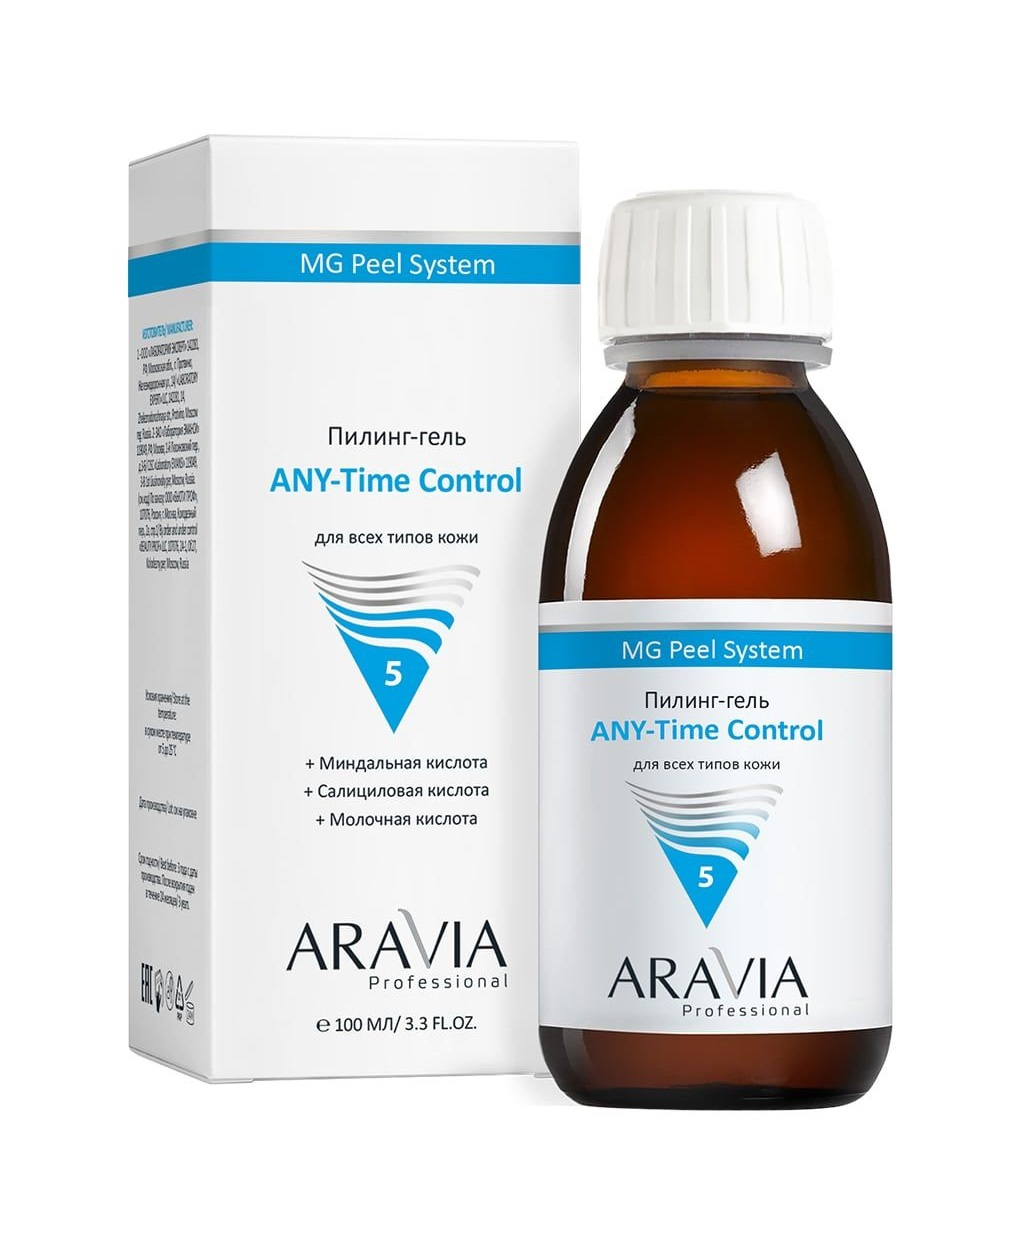 Пилинг-гель для всех типов кожи Aravia Professional ANY-Time Control